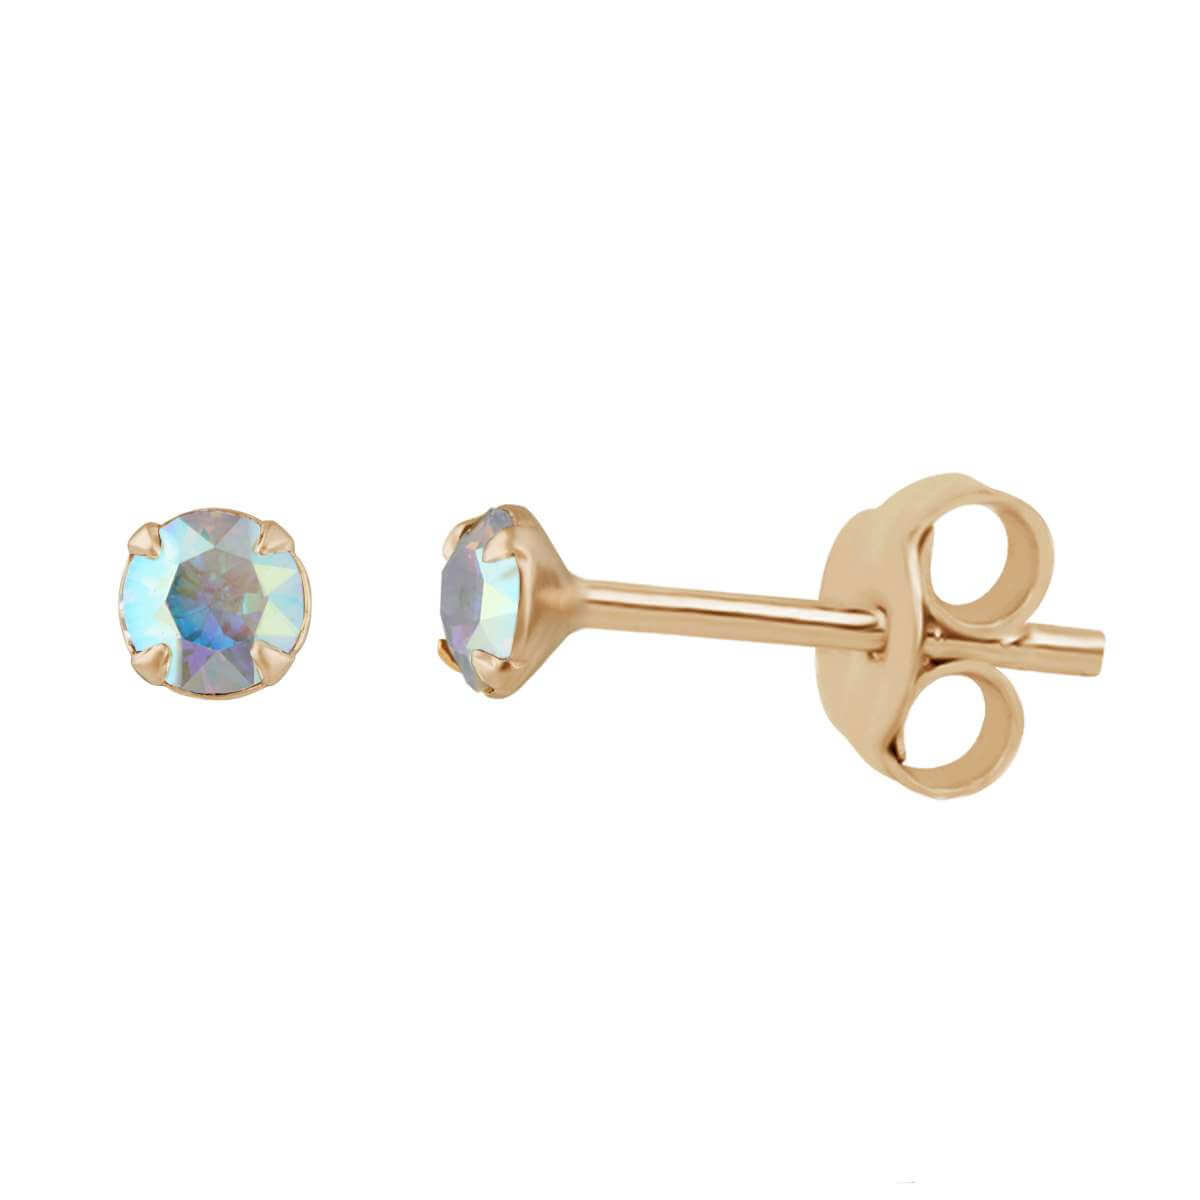 Rose Gold Plated Sterling Silver Aurora Borealis CZ Stud Earrings